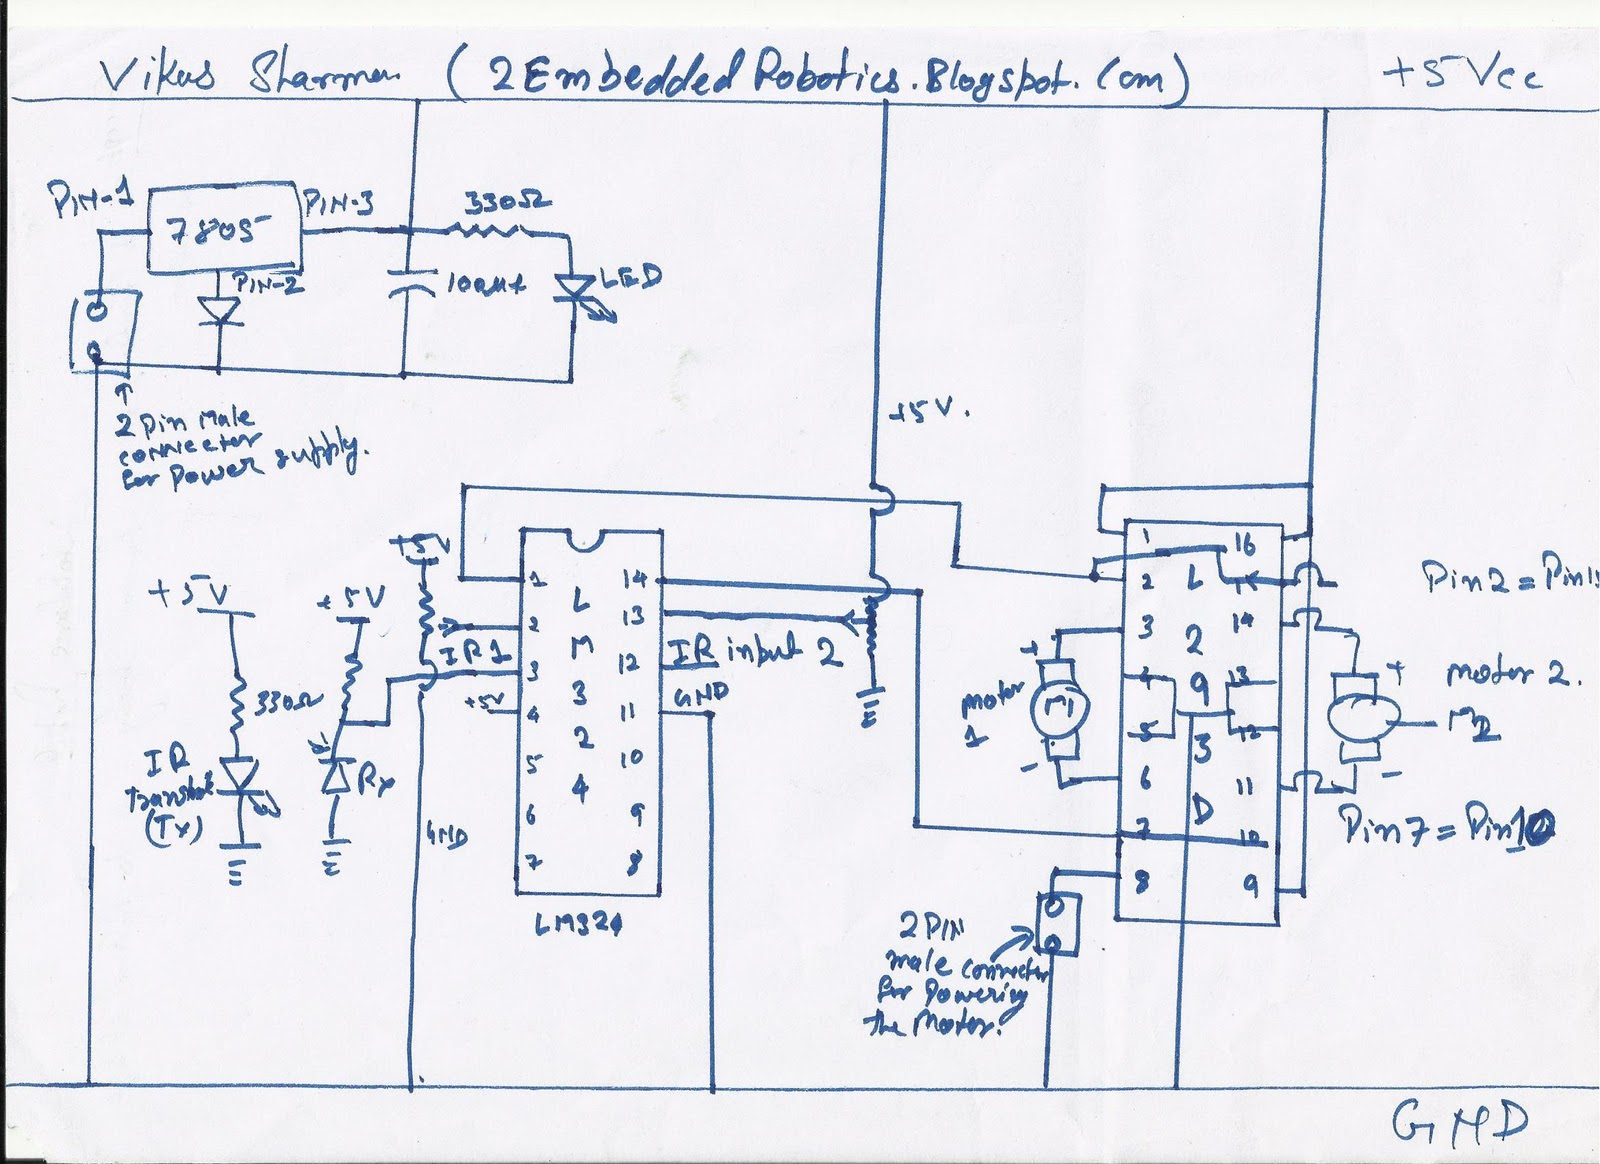 Circuit Diagram Of Self Balancing Robot Great Installation Robotic Electronics Projects And Details Rh 2014 Blogspot Com